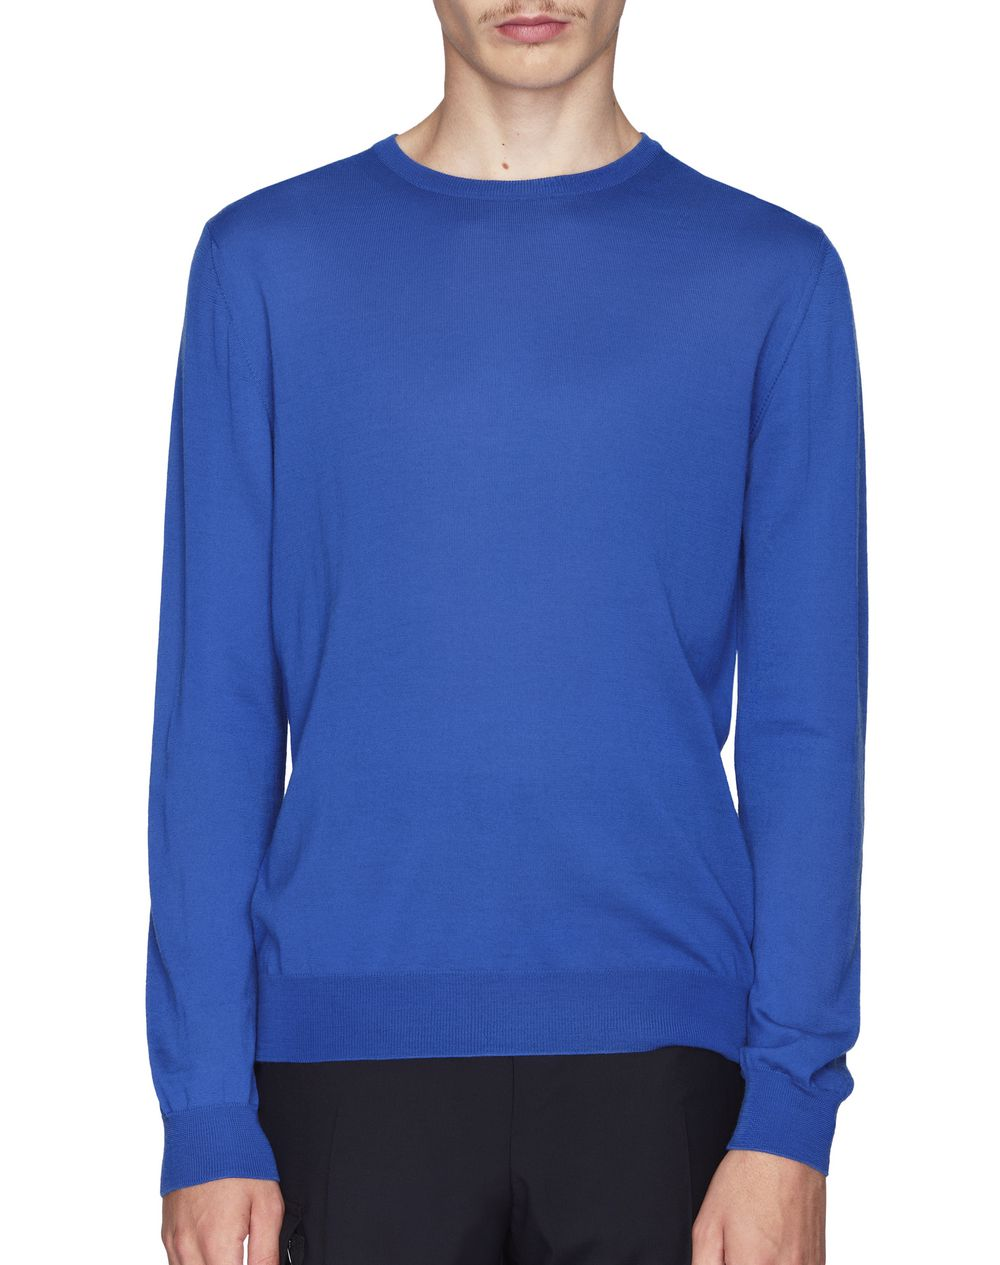 ROUND-NECK LIGHT BLUE WOOL JERSEY SWEATER - Lanvin